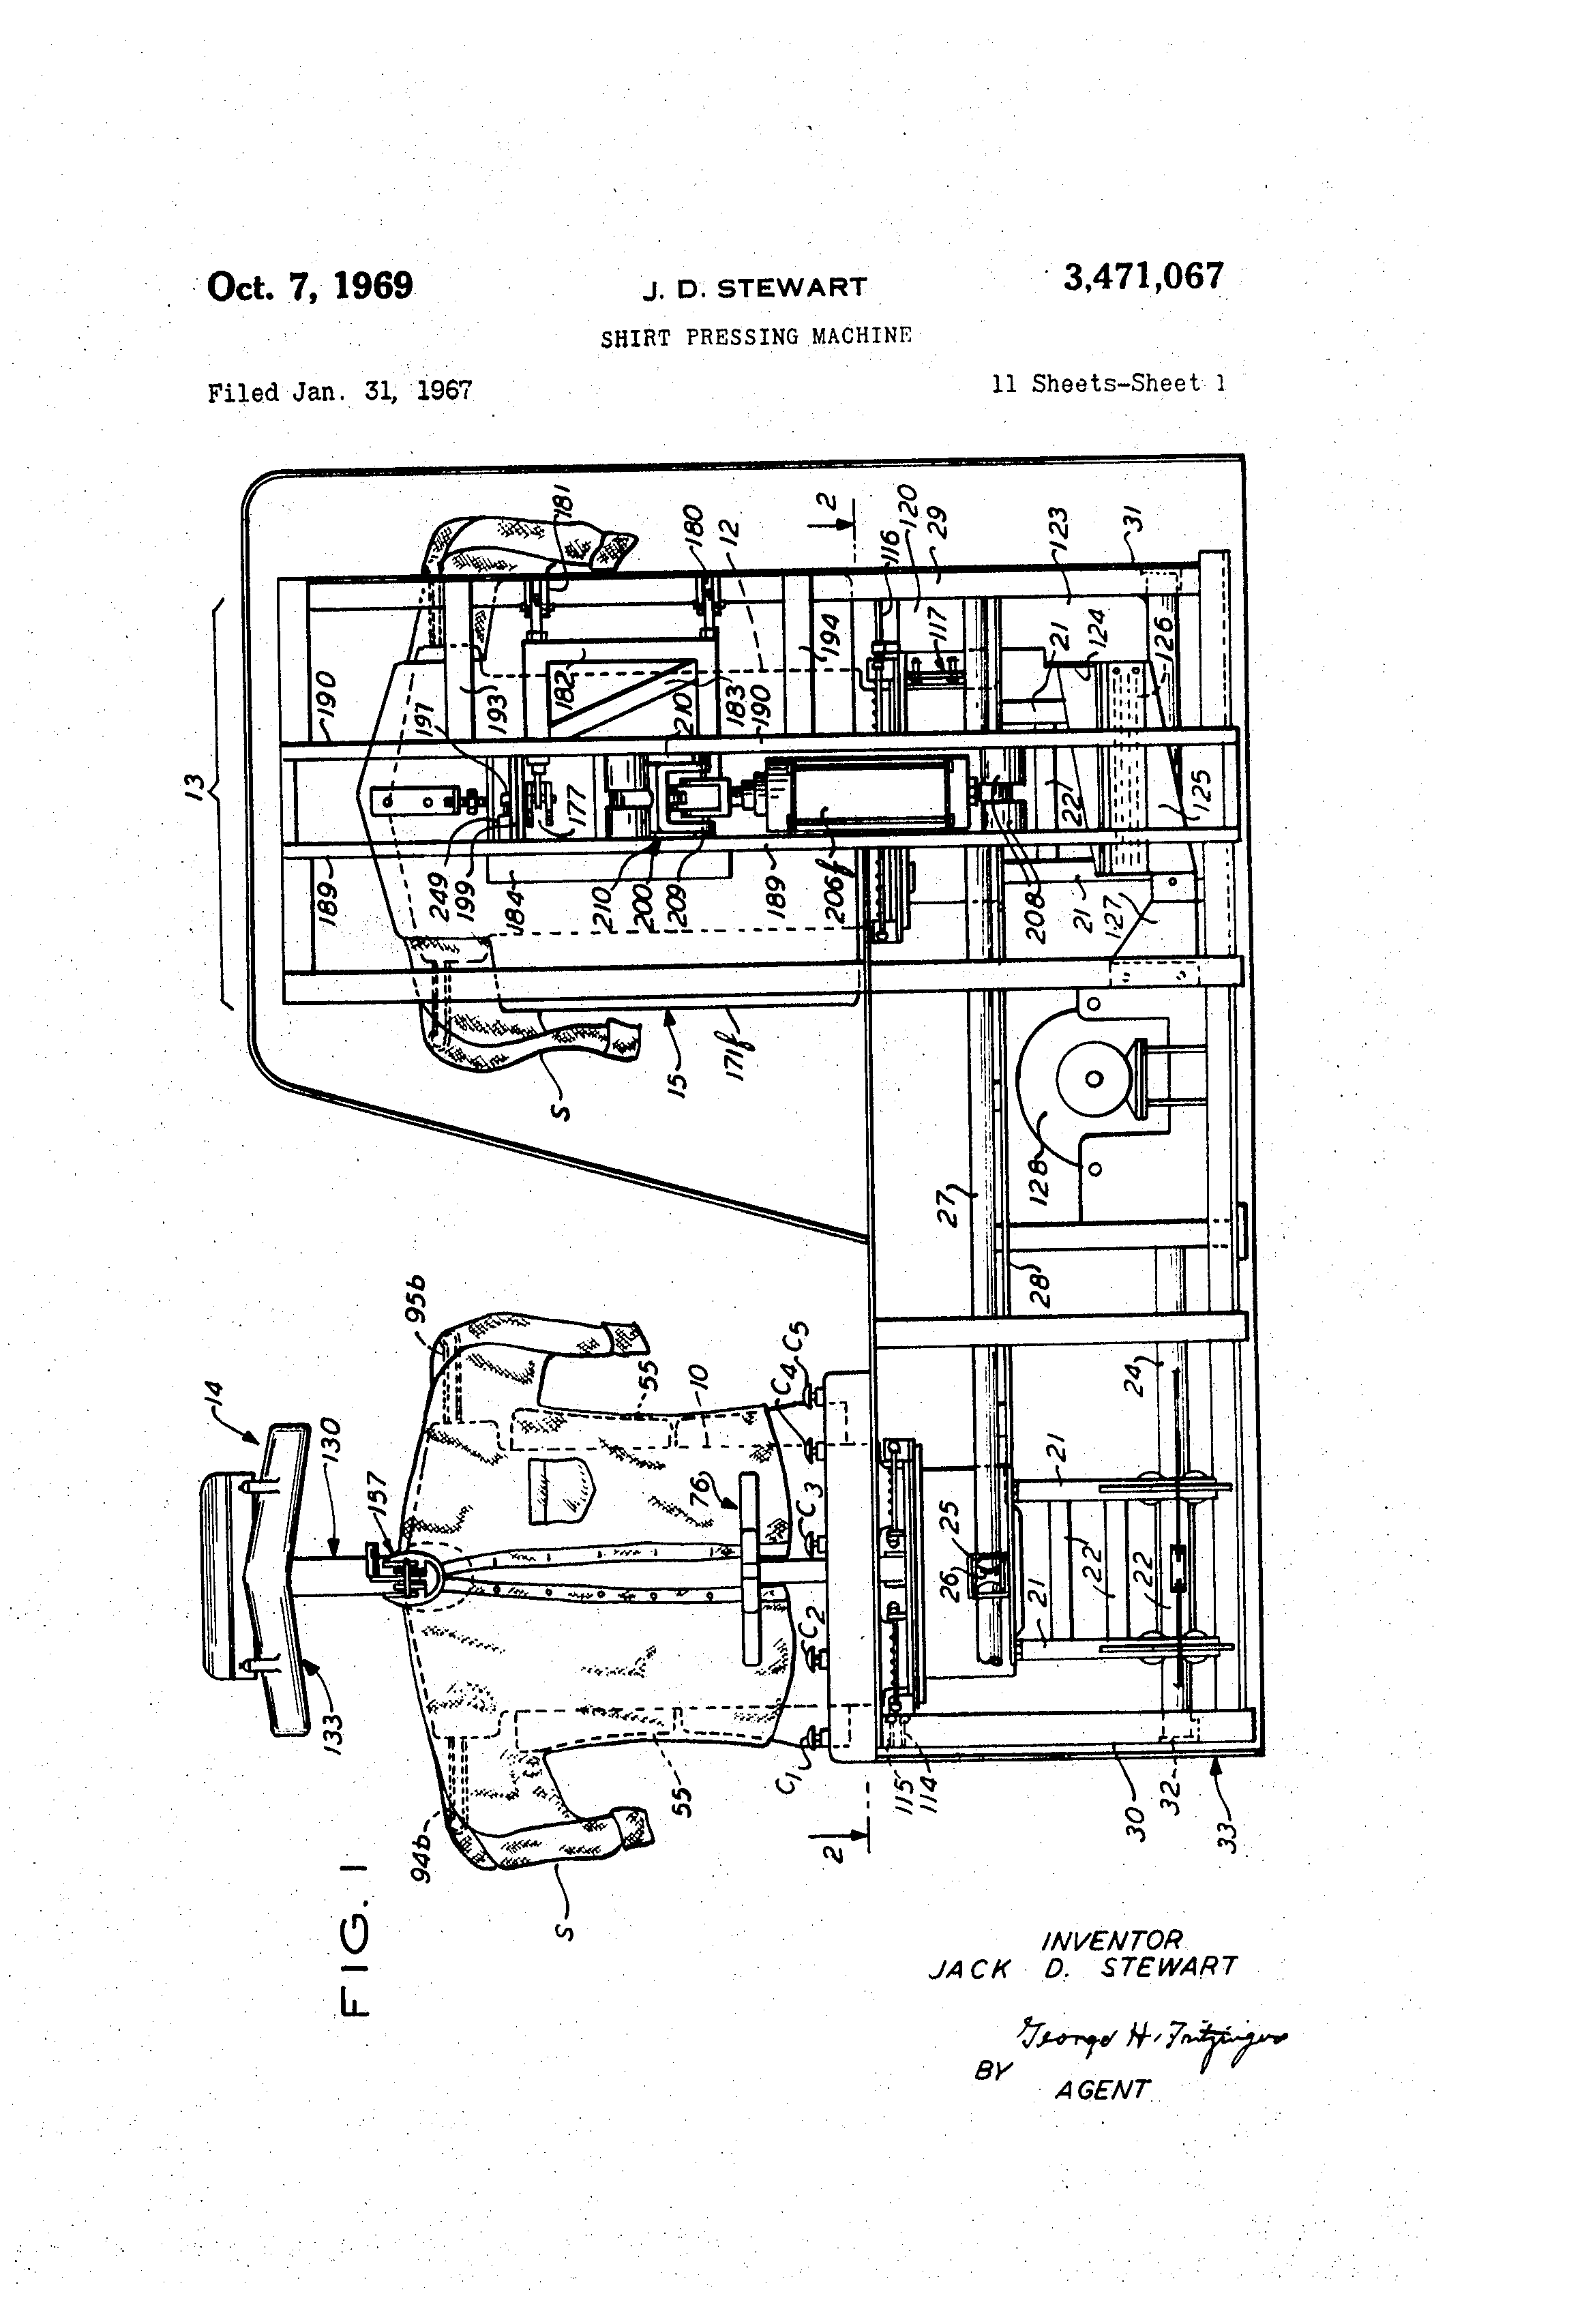 US3471067 0 patent us3471067 shirt pressing machine google patents  at nearapp.co